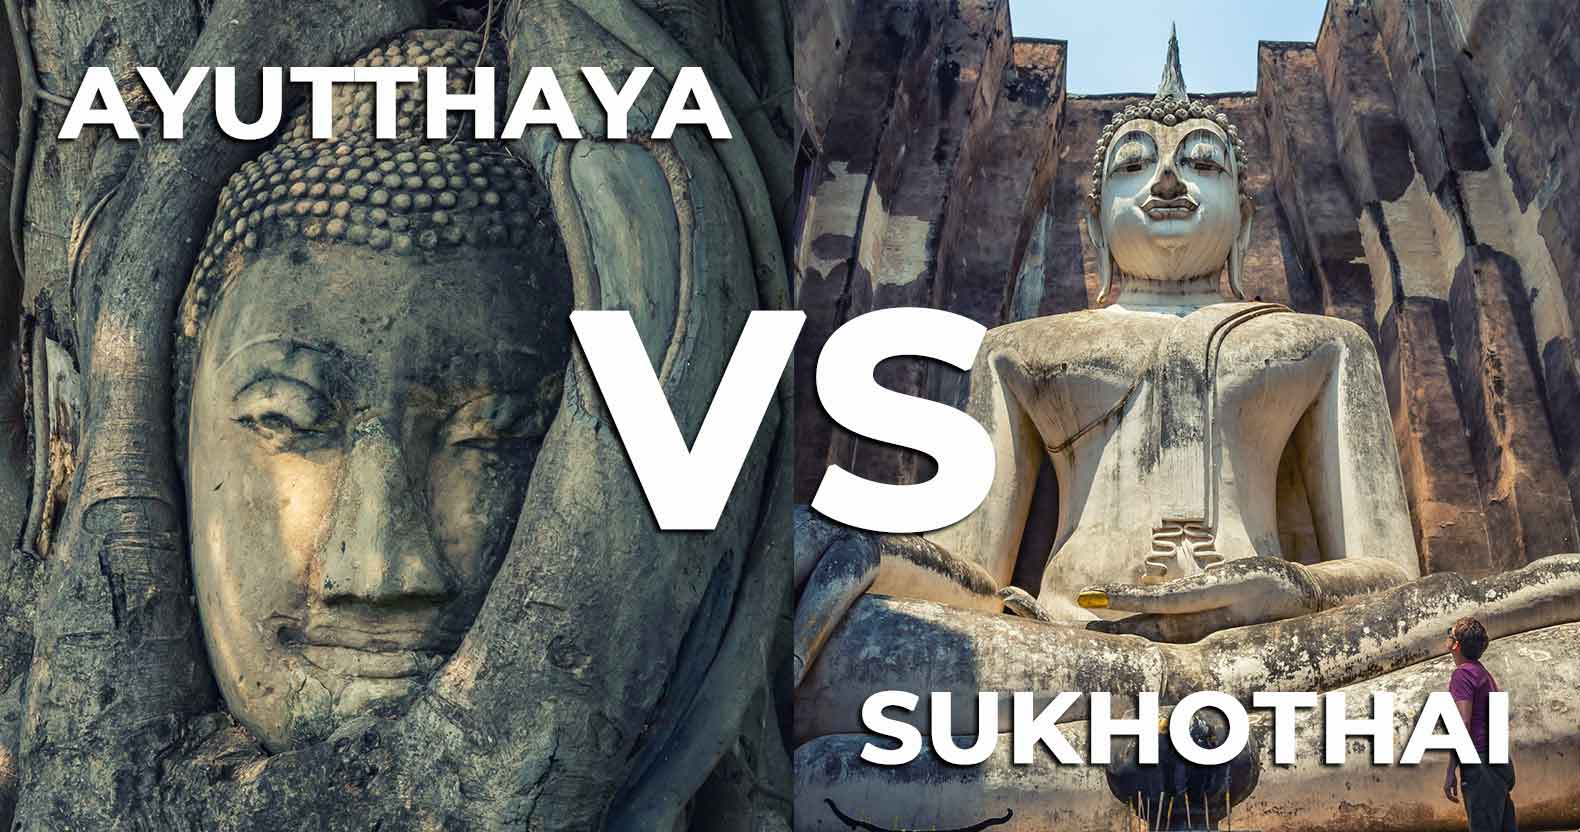 Ayutthaya or Sukhothai: which historical park is better?